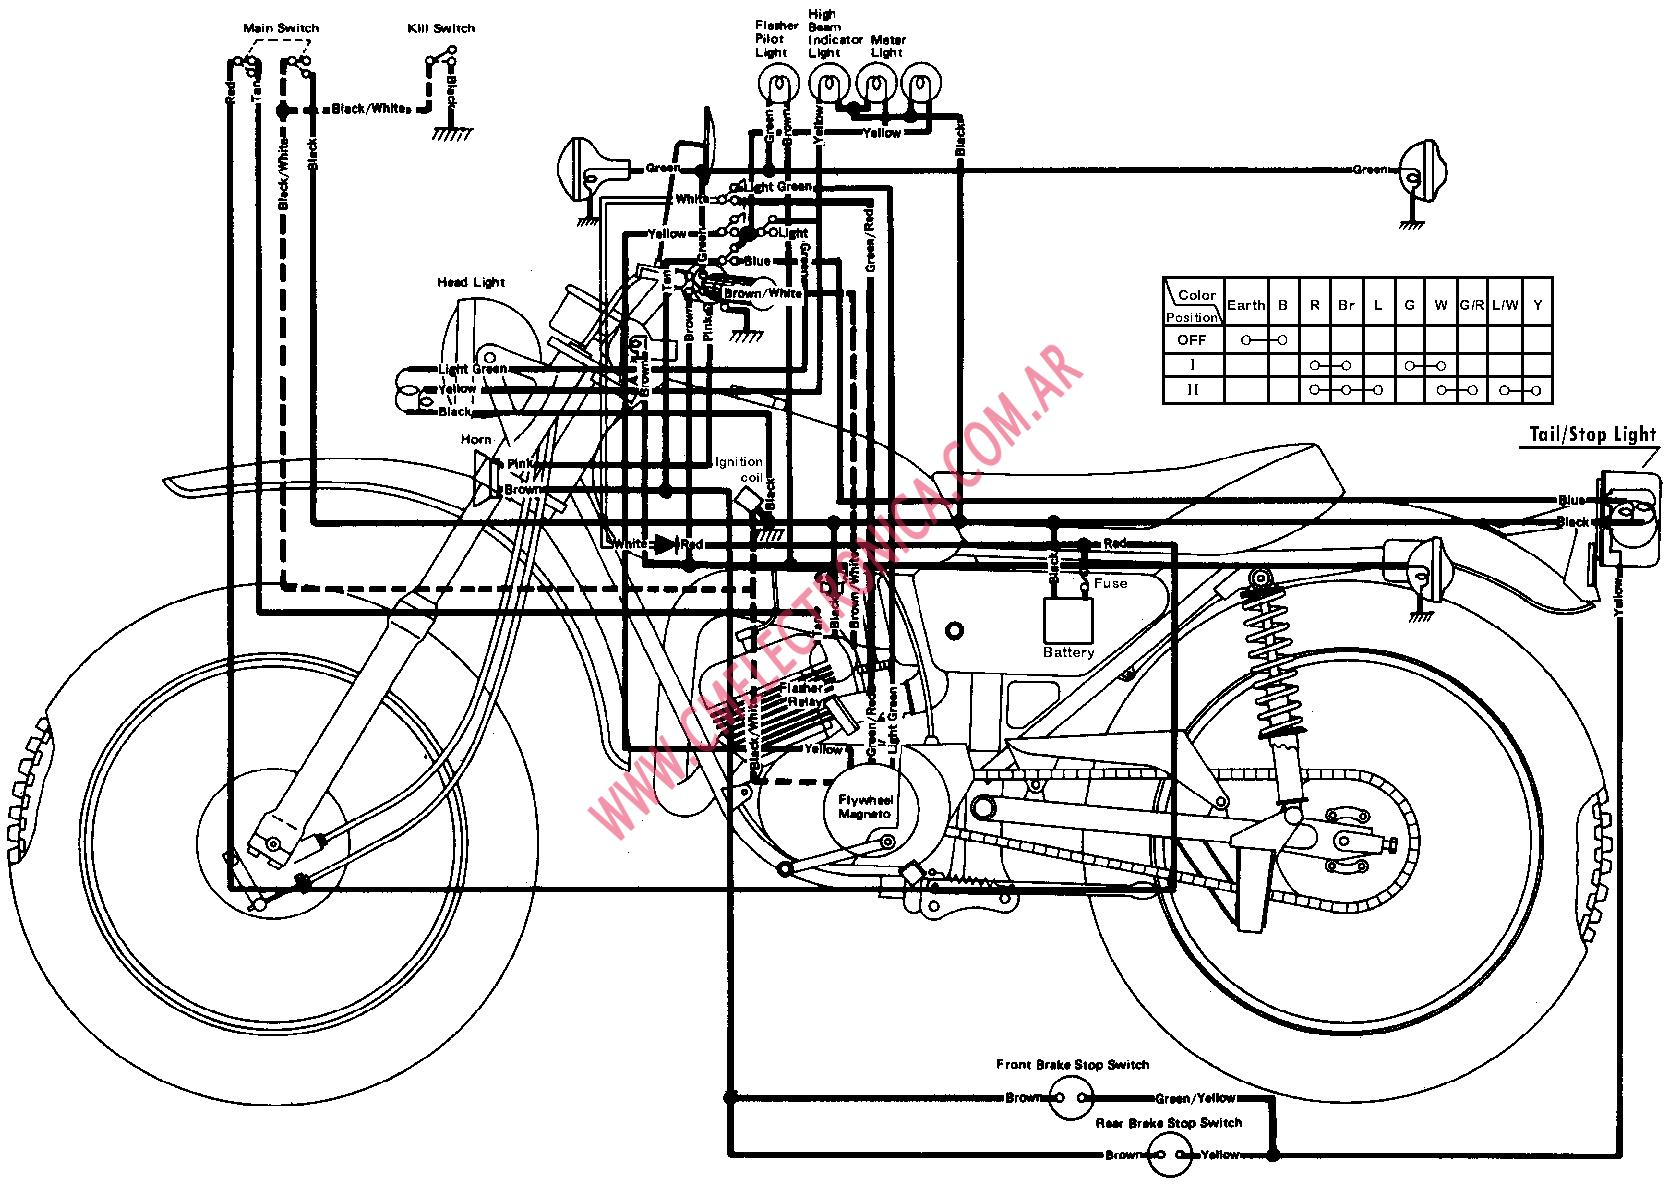 Awesome Ttr 125 Wiring Diagram Basic Electronics Wiring Diagram Wiring Cloud Overrenstrafr09Org